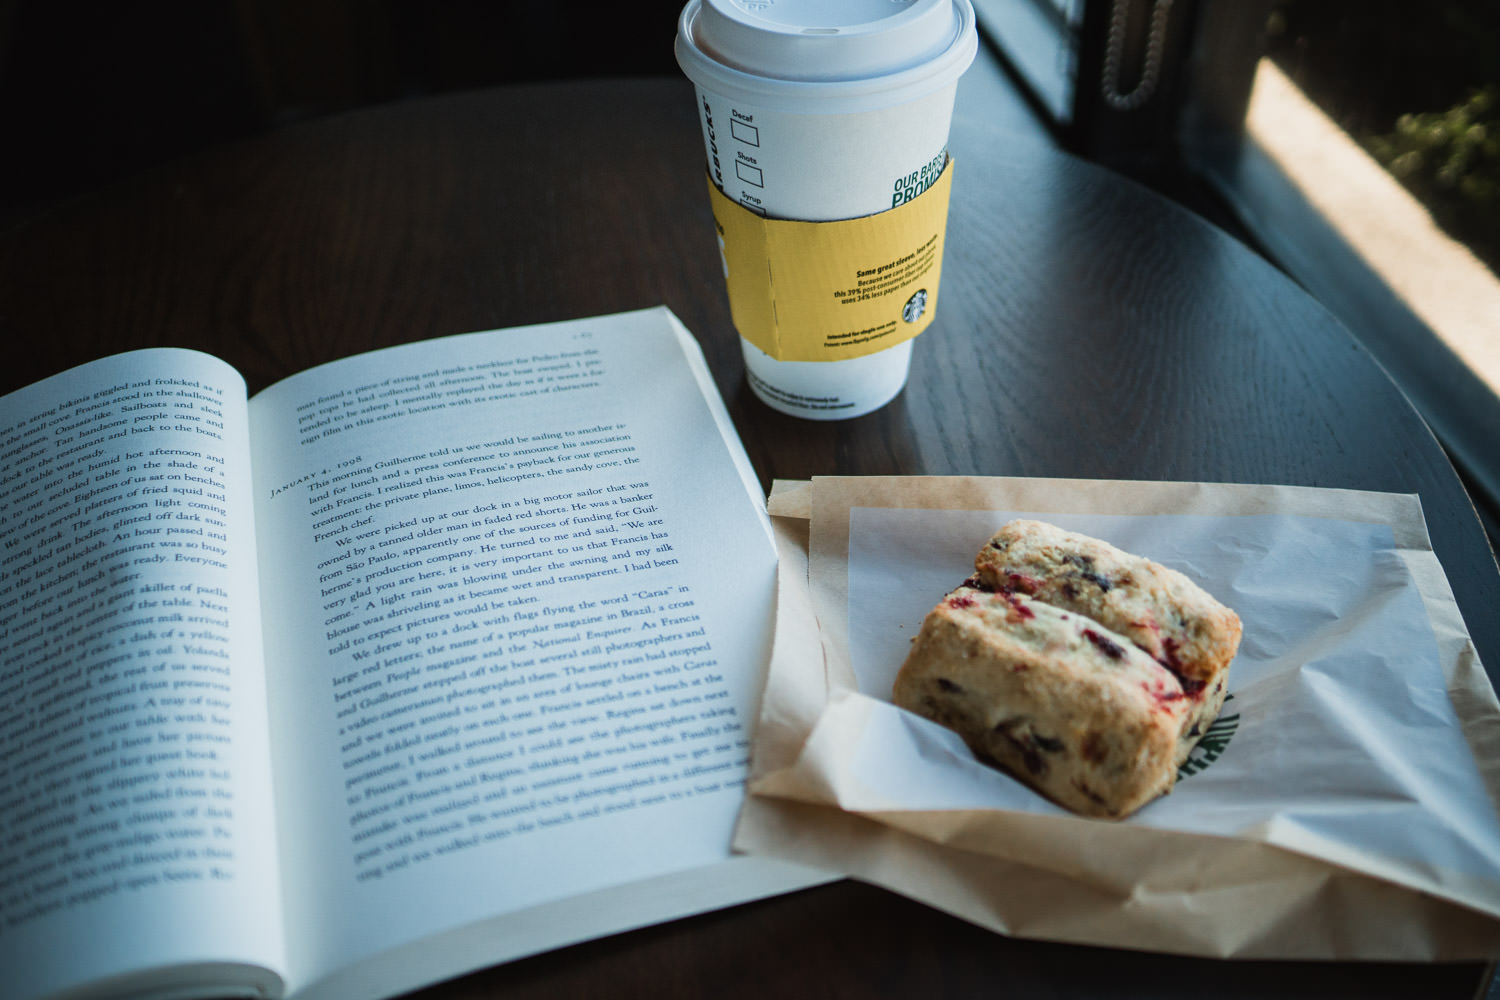 A book and a coffee and a scone.